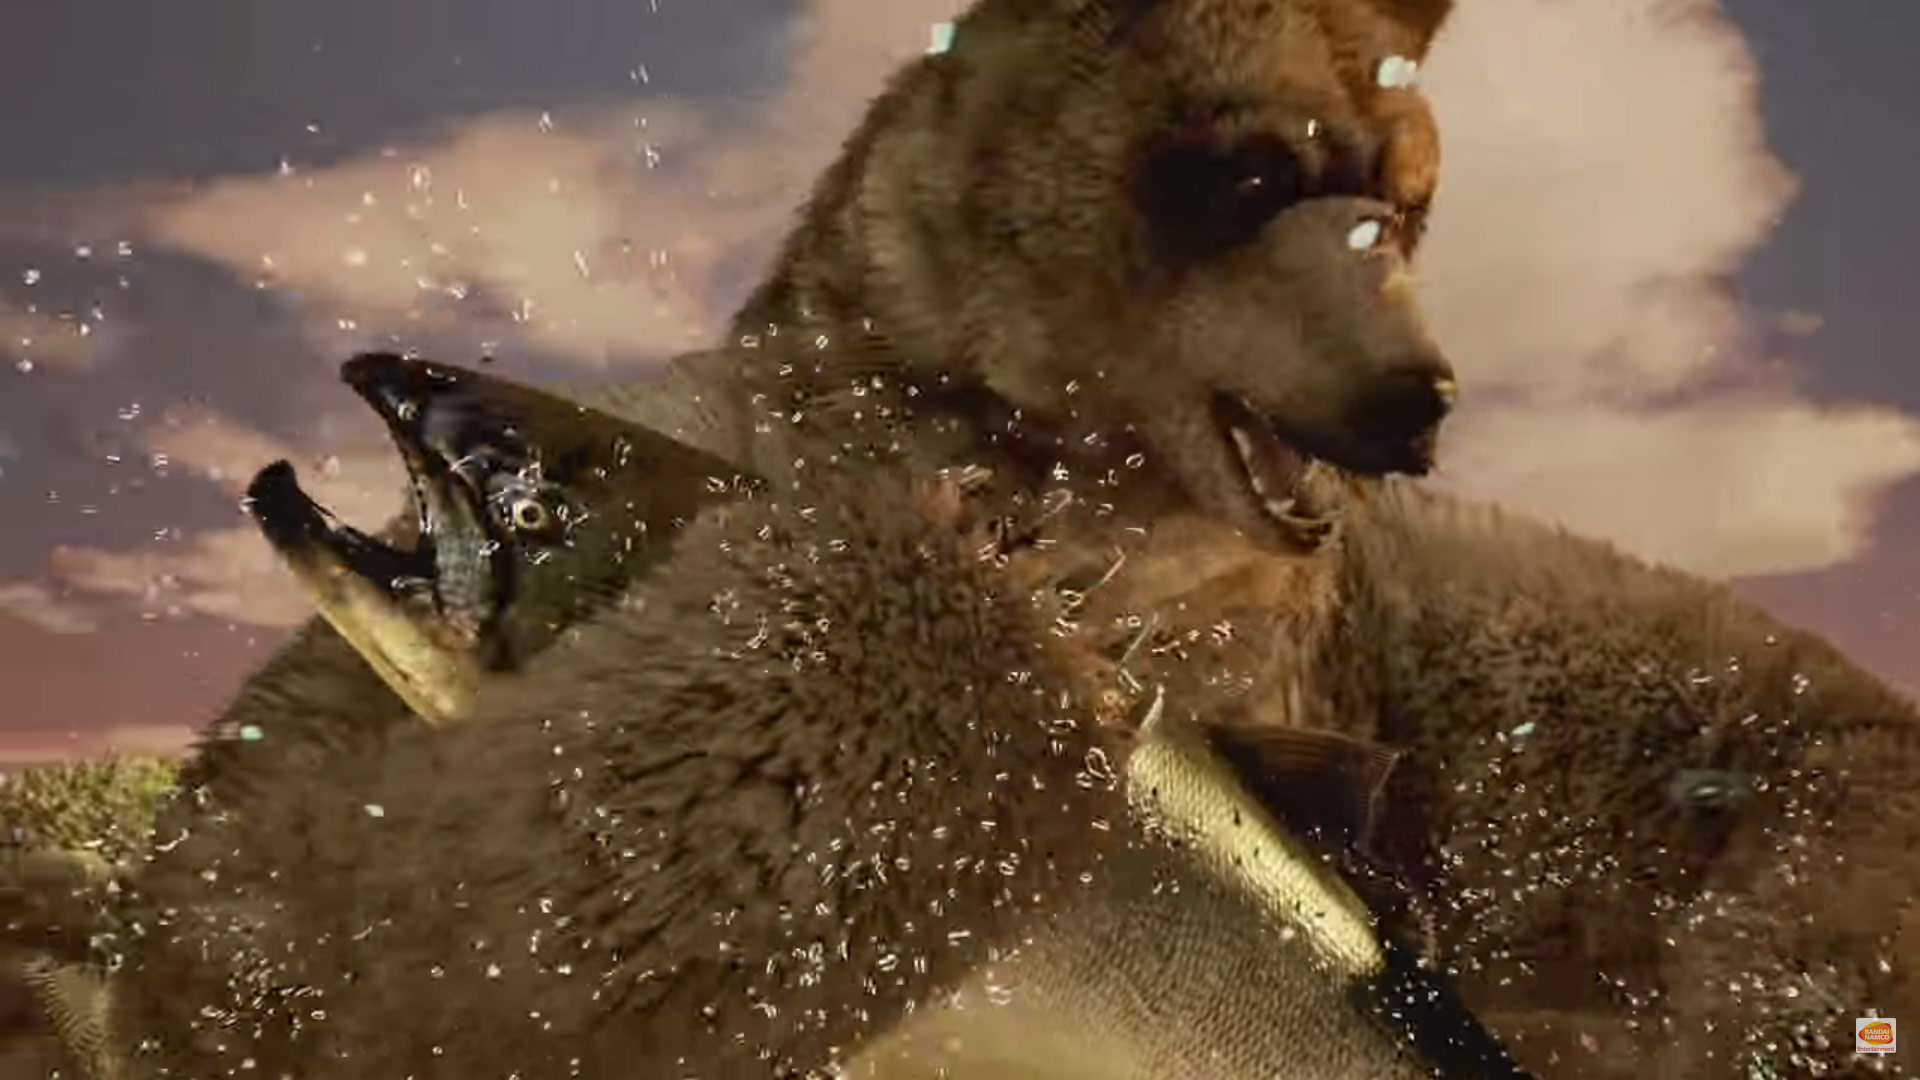 Tekken 7: Fated Retribution Kuma & Panda Reveal 5 out of 6 image gallery